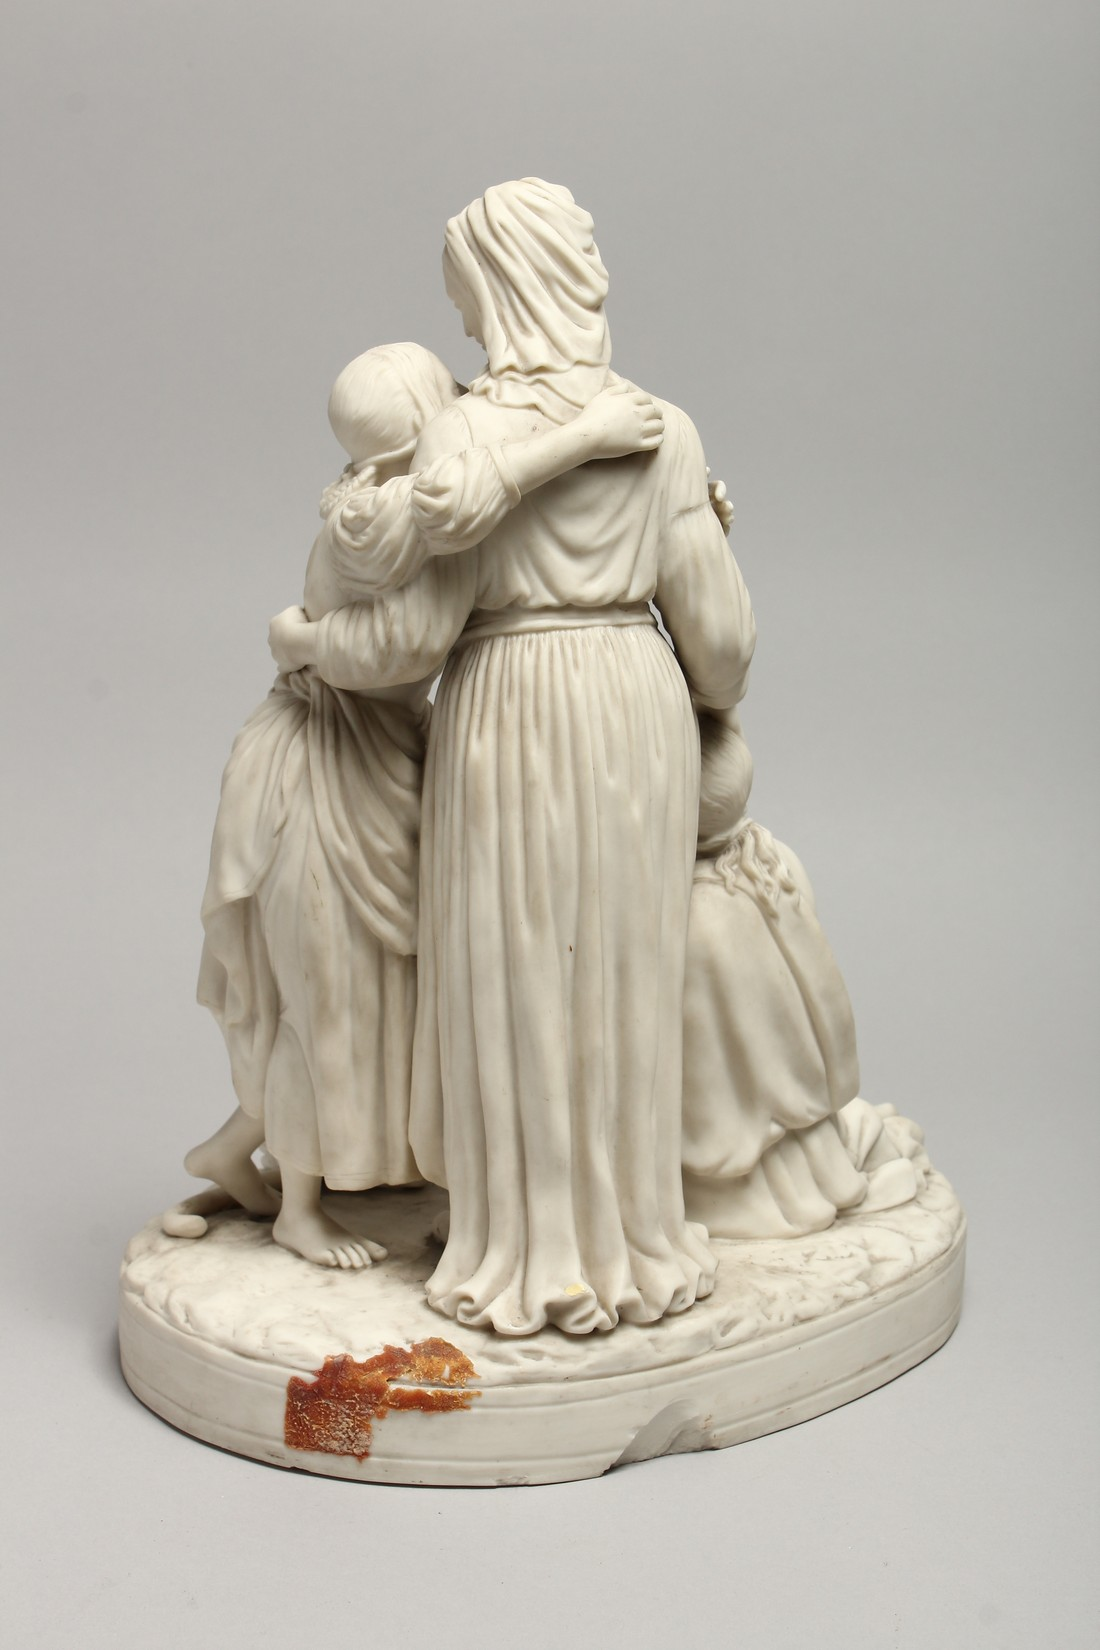 """A LATE 19TH CENTURY PARIAN WARE GROUP """"NAOMI AND HER DAUGHTER IN LAW"""". 13 ins high. - Image 6 of 8"""